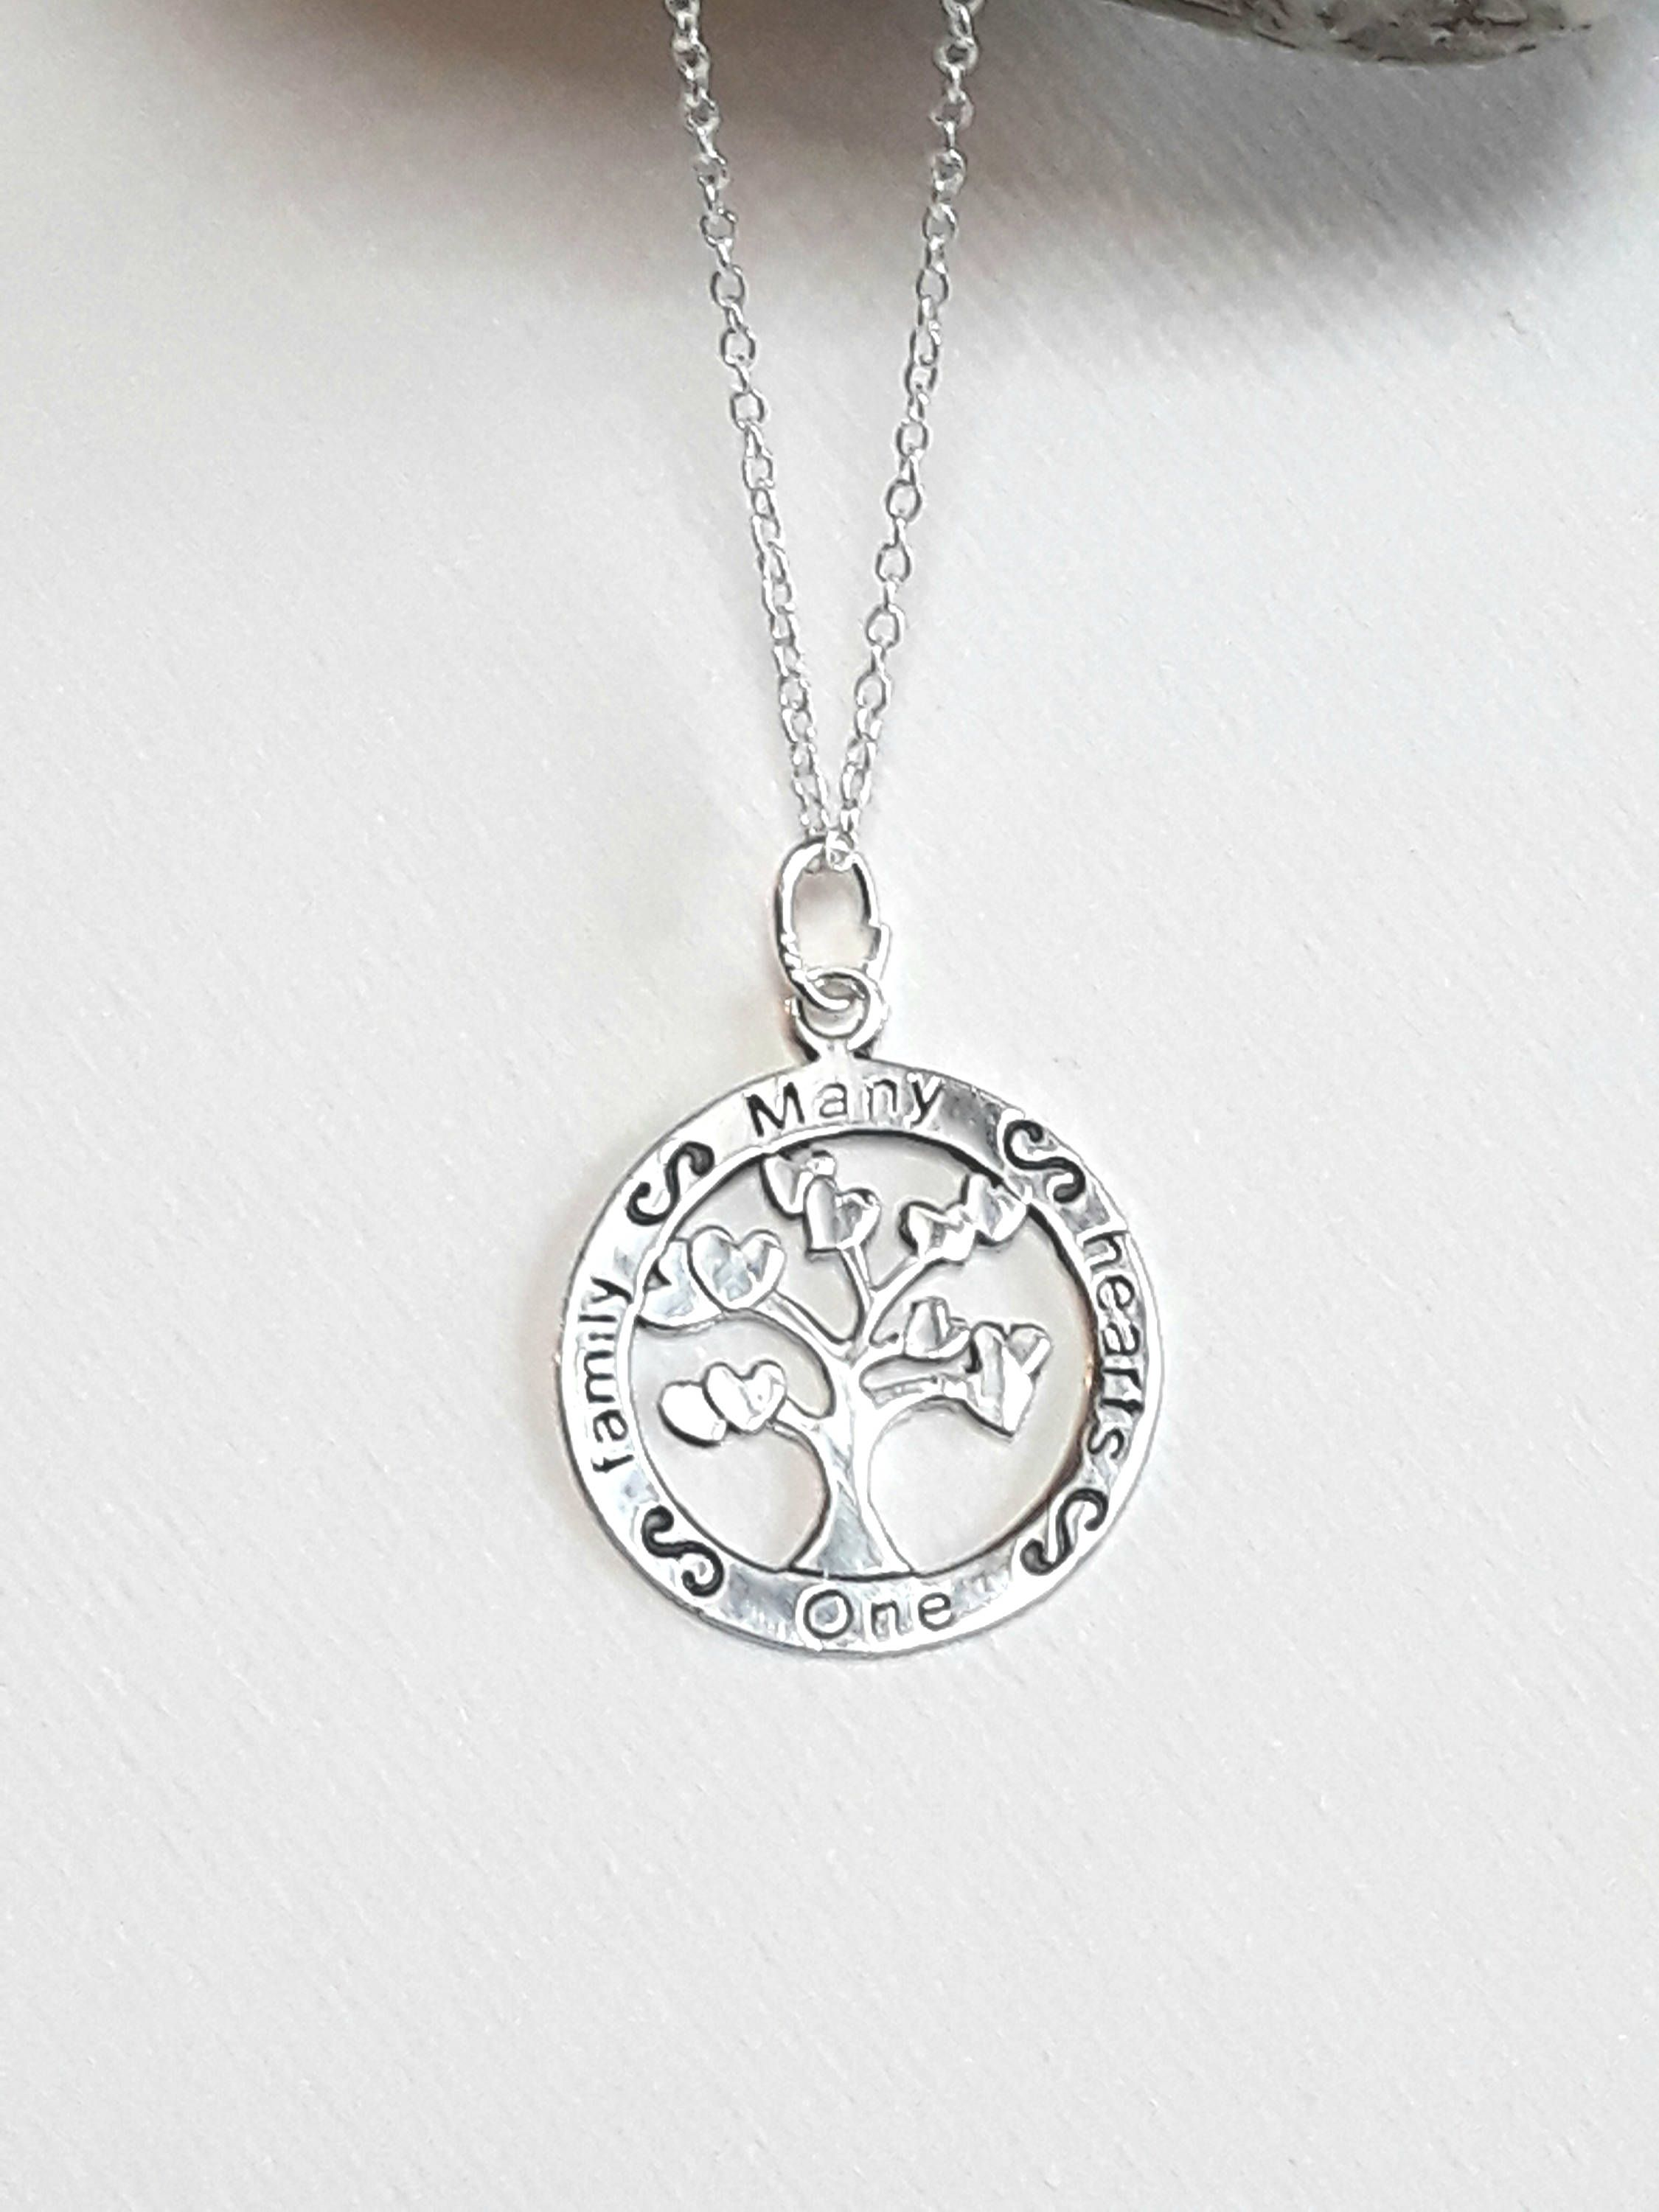 necklace silver amazon names with free dp engraving tree personalised pendant sterling co jewellery uk family